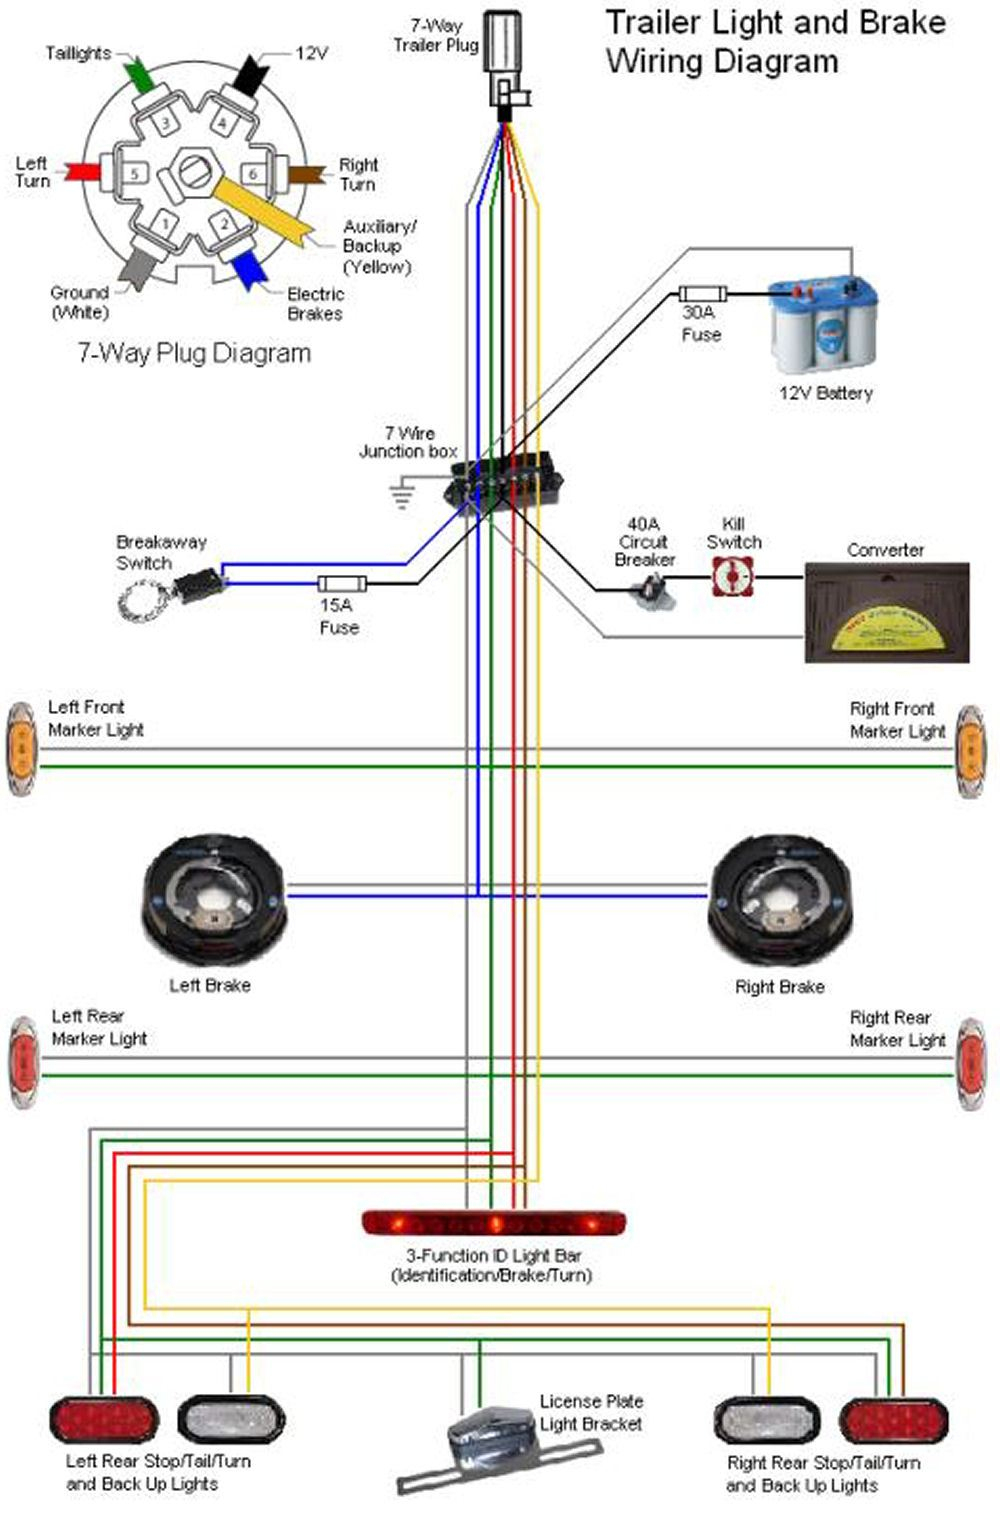 Auxiliary With Tail Lights And Electric Brakes 7 Pin Trailer Wiring - Trailer Brake Wiring Diagram 7 Way